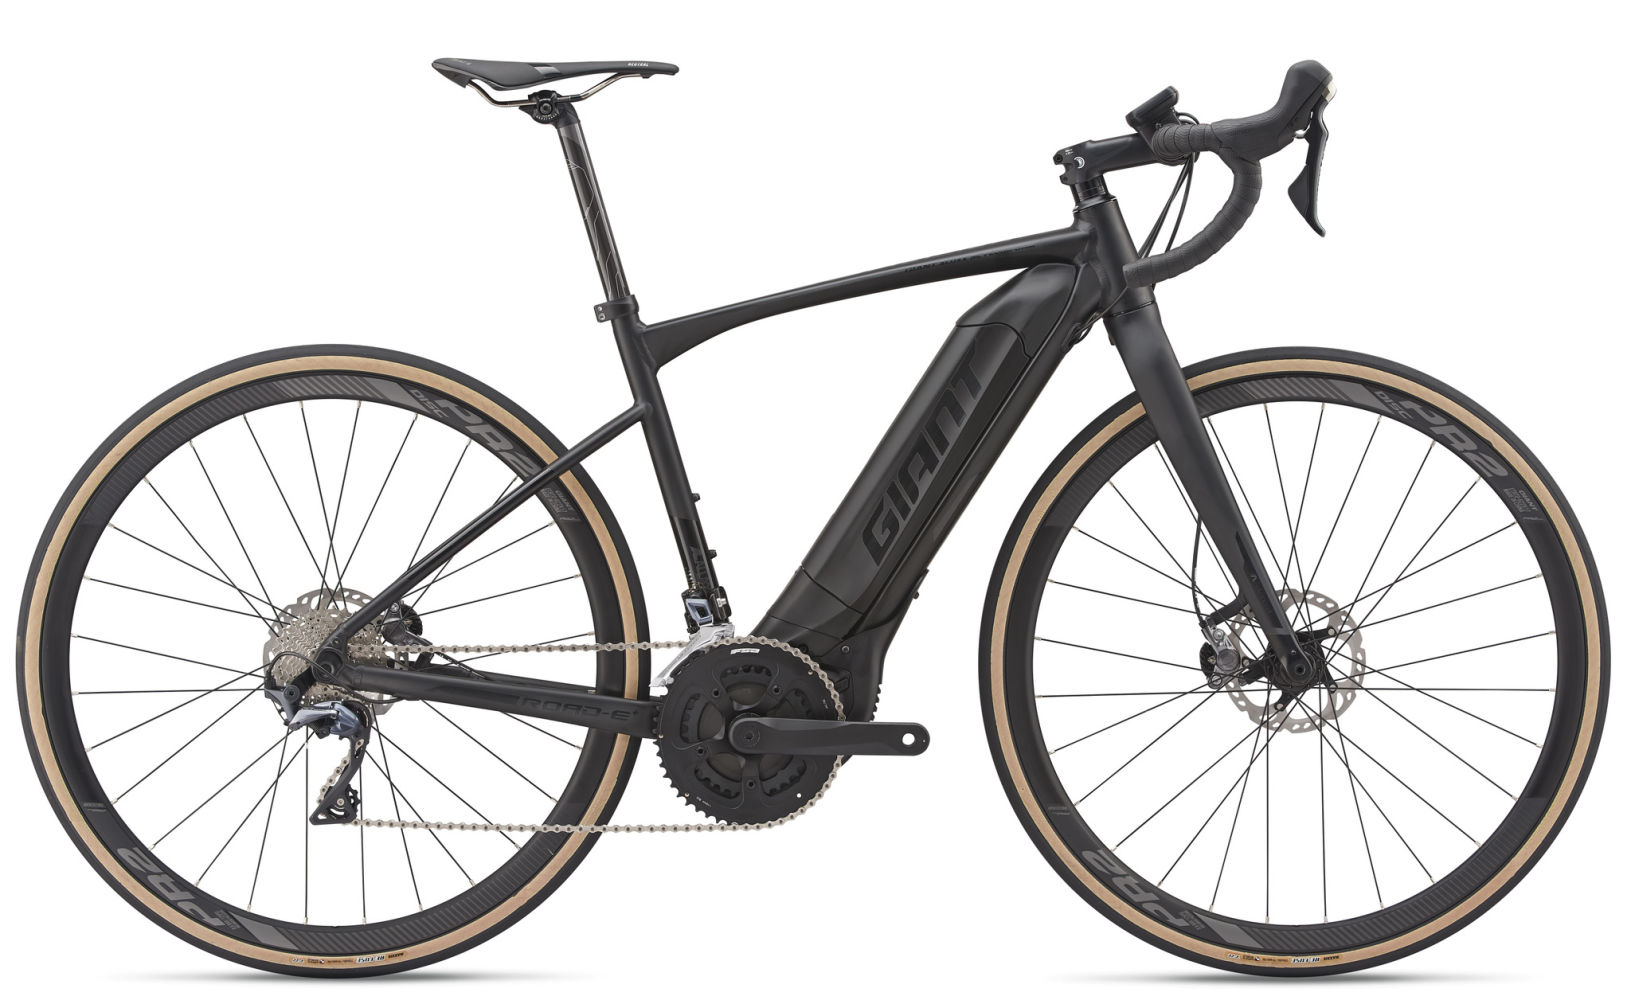 The Giant Road-e+1Pro retails for $4,400.